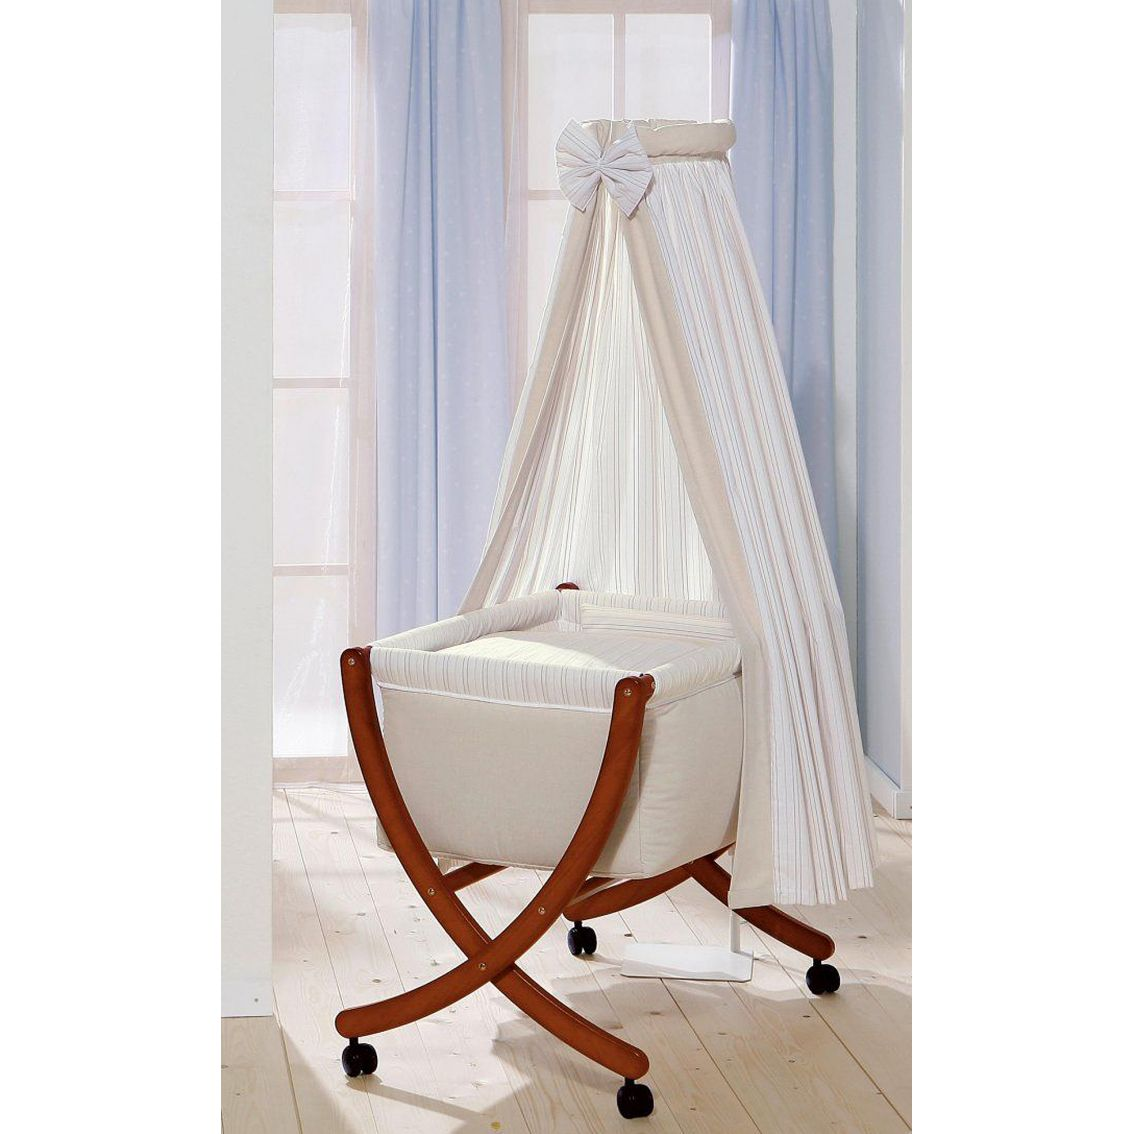 Baby cribs uk online - Leipold Cappuccino Baby Crib